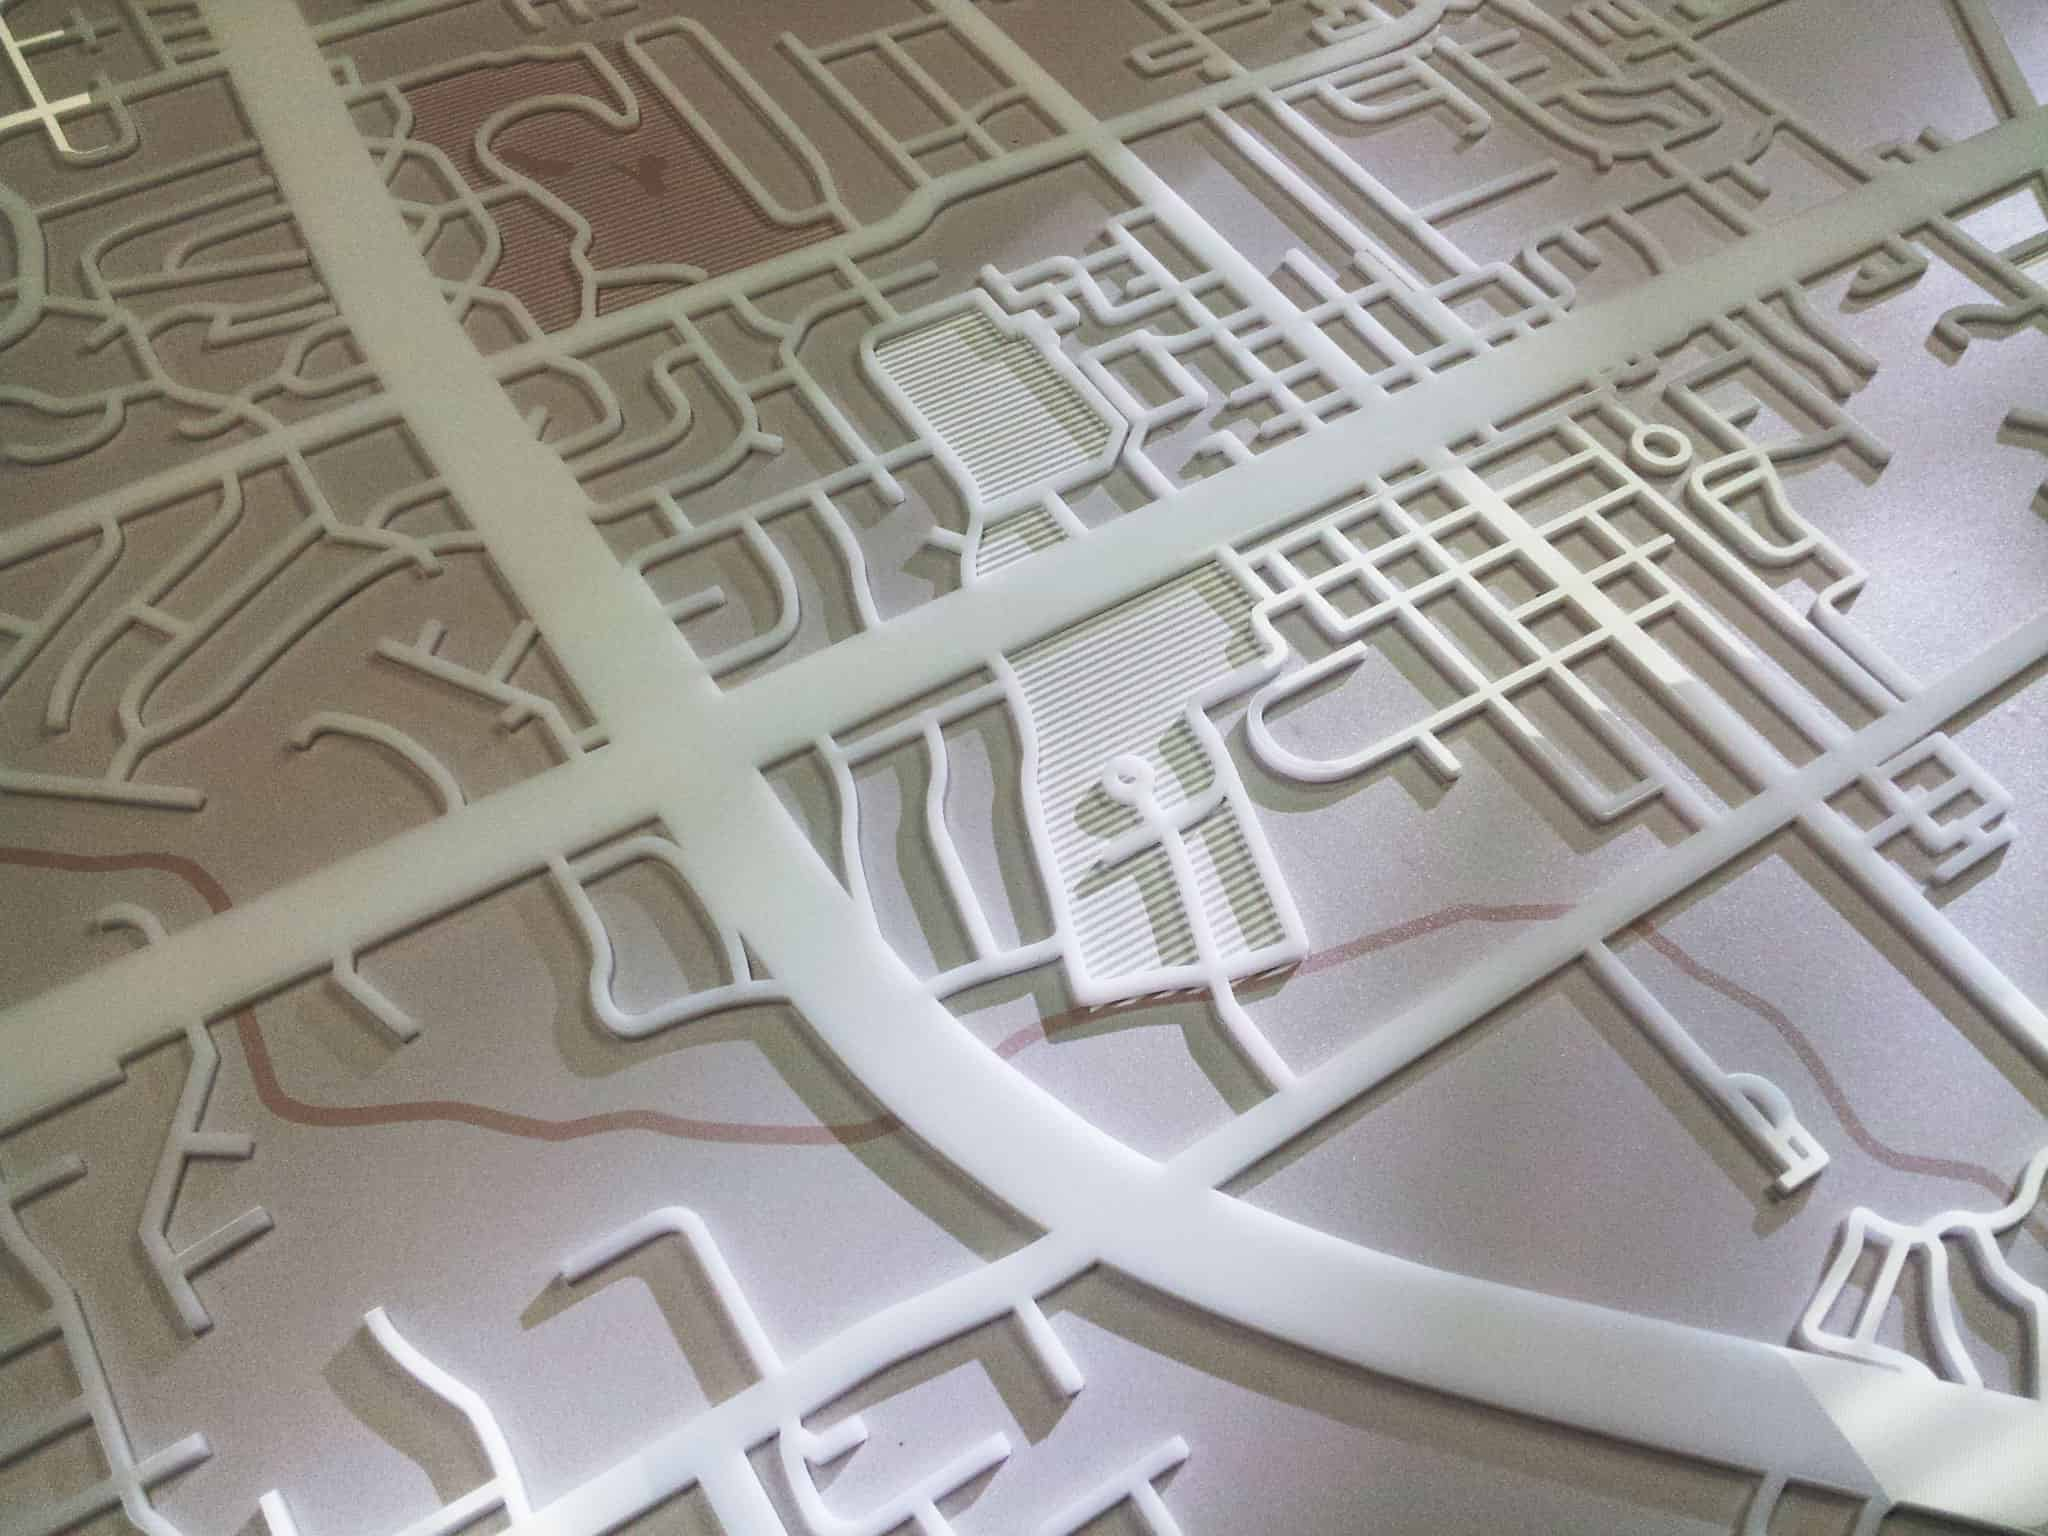 Laser cut acrylic map for Huntington Bank